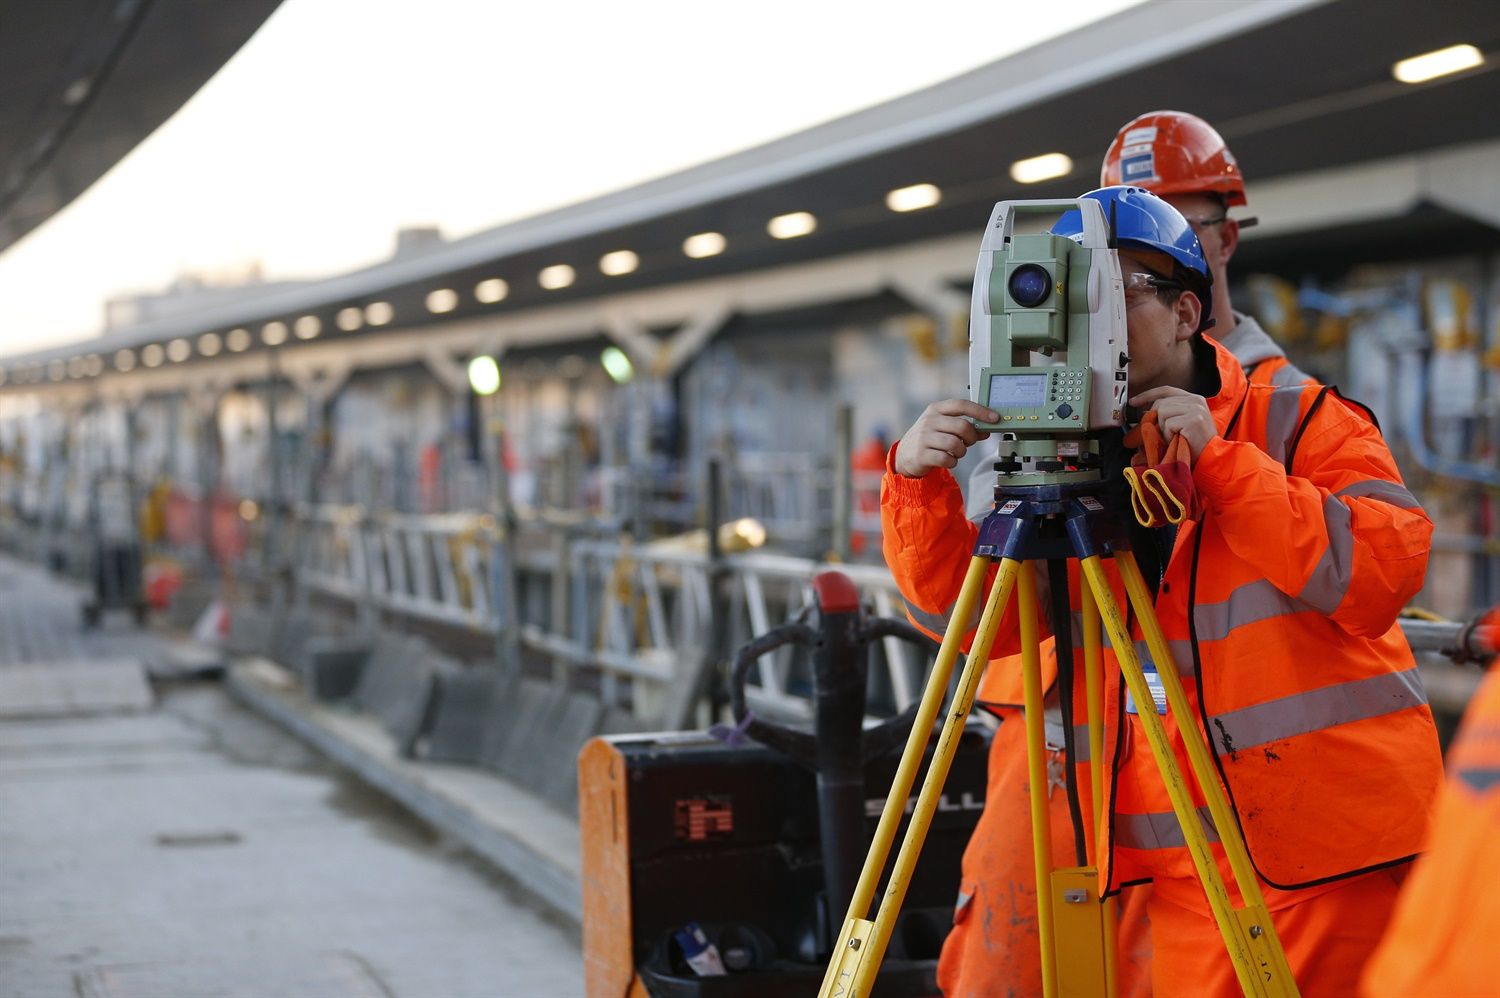 Why rail companies may be ignoring the benefits of SMEs